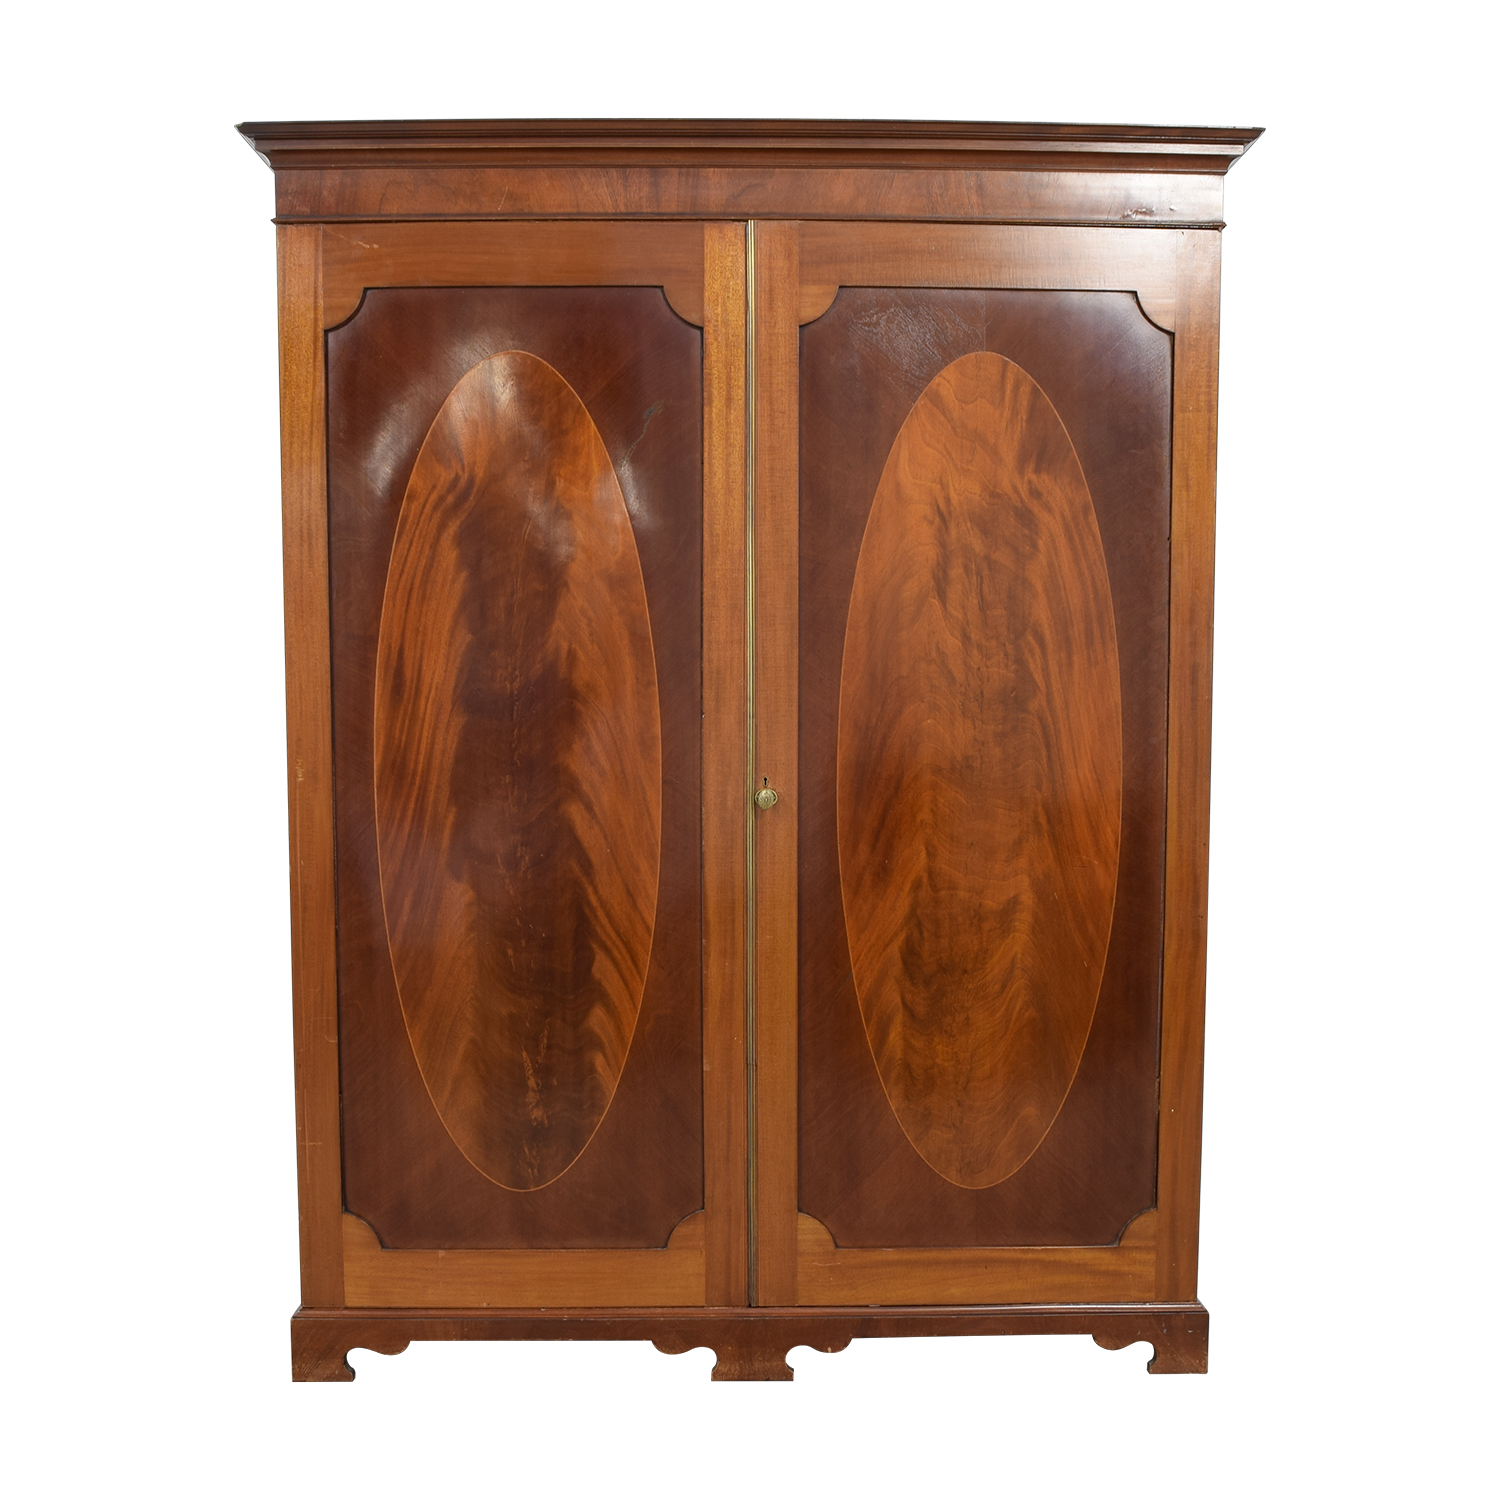 shop ABC Carpet & Home ABC Carpet & Home 17th Century English Crotchwood Armoire online